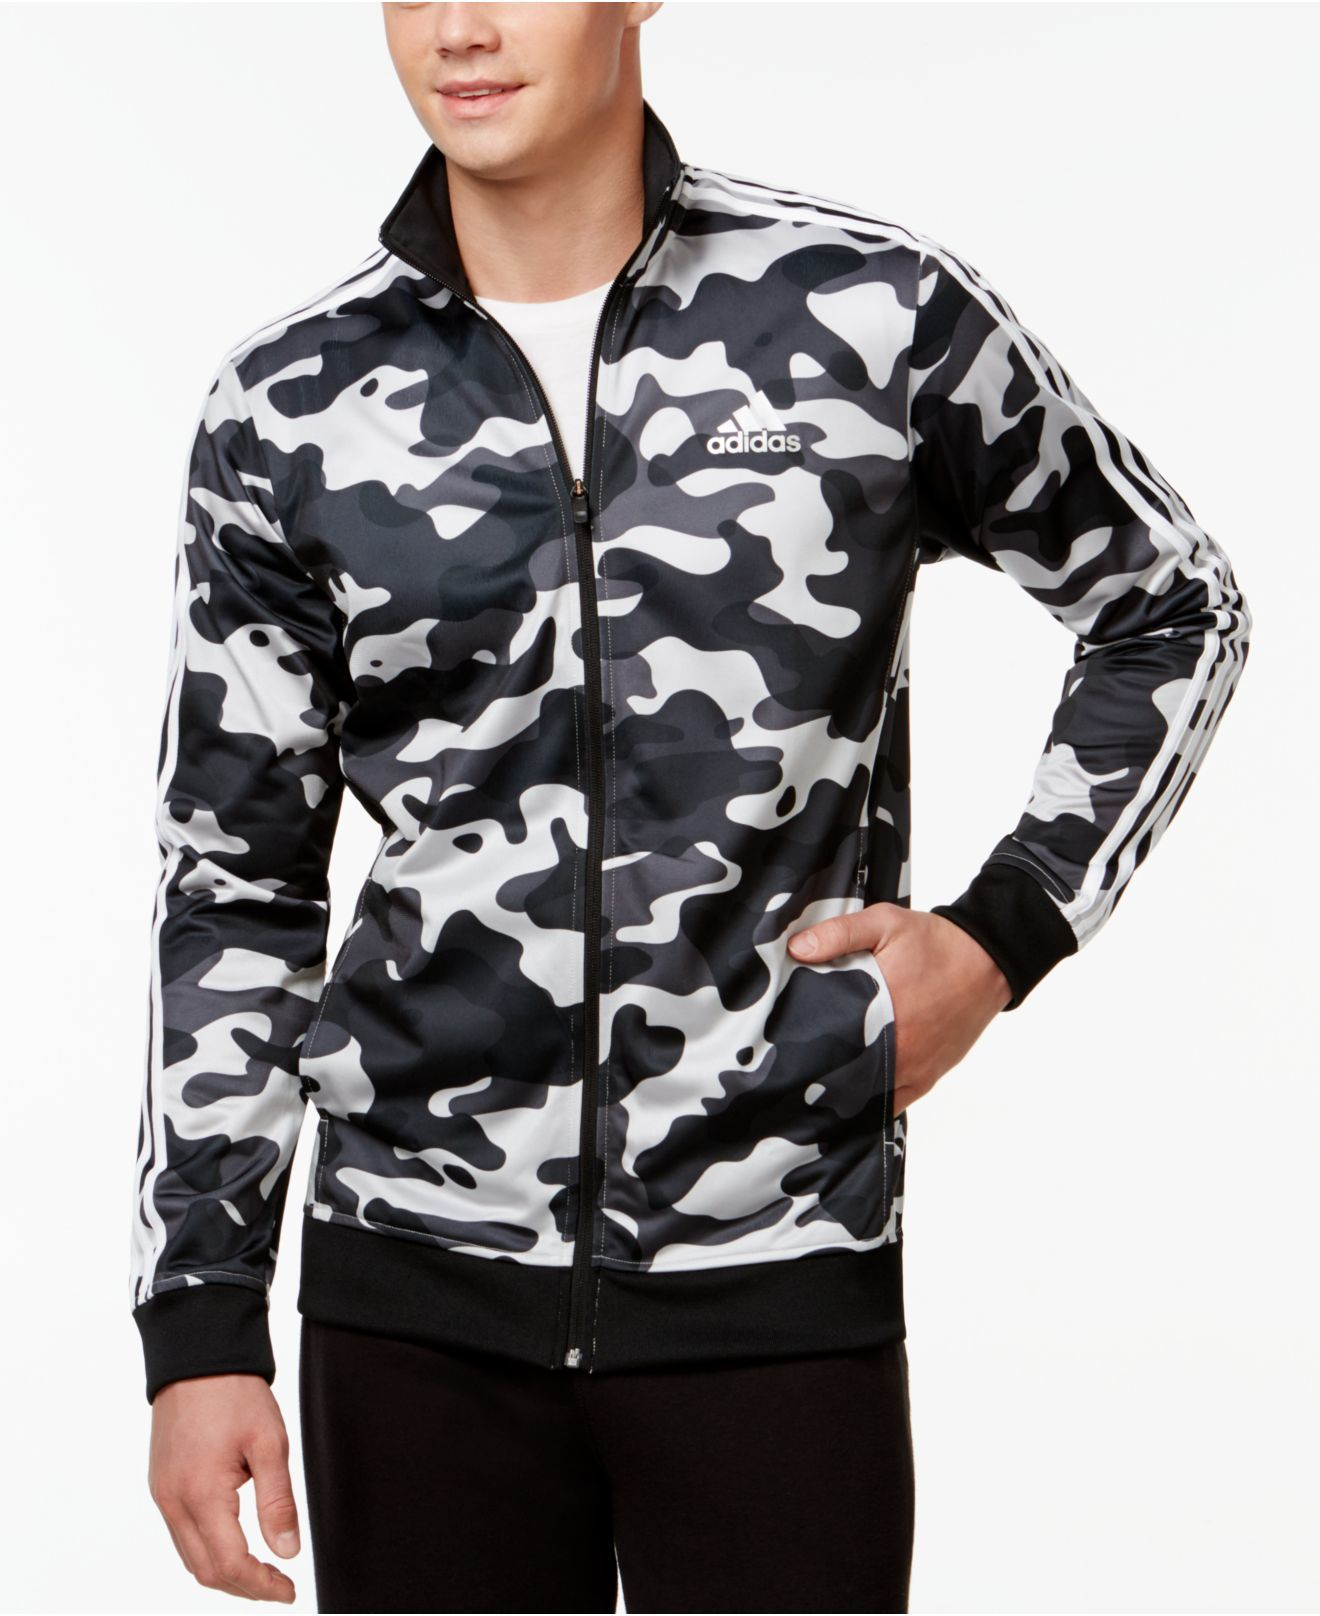 69c72085ef31 Adidas originals Men s Camo Print Track Jacket in Gray for Men ...